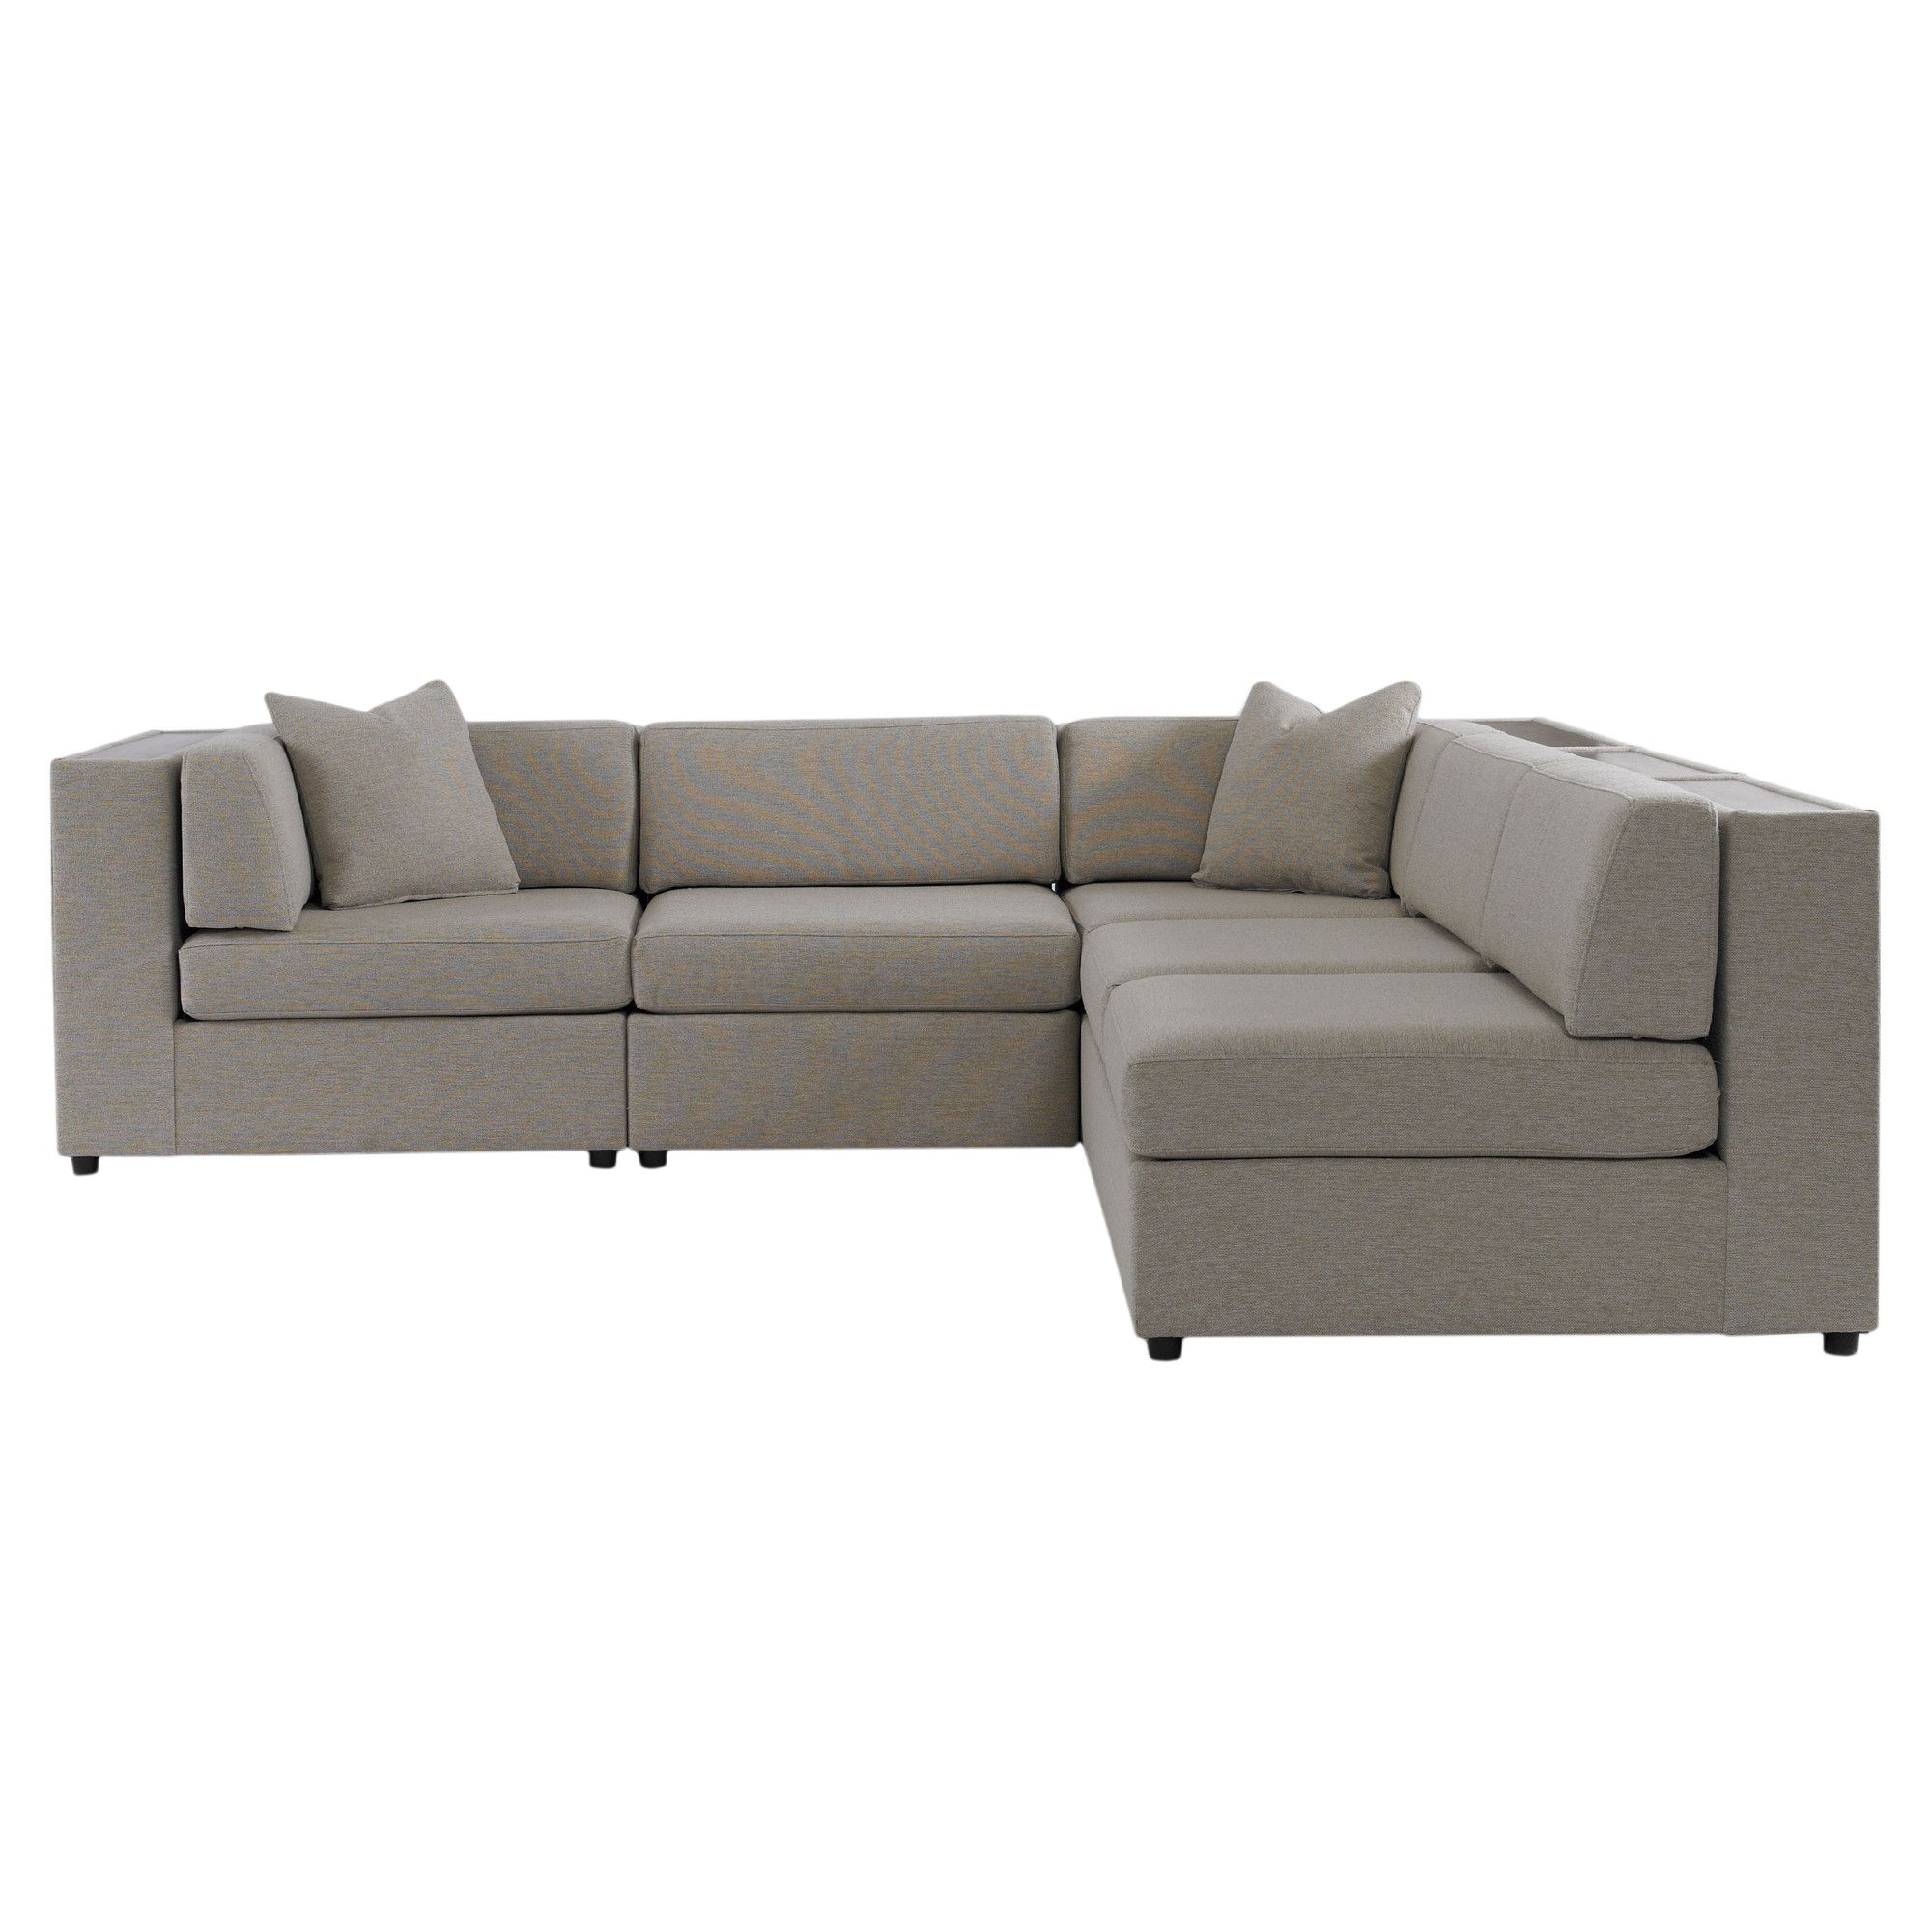 Sprouse Sectional Sofa | Our Nod To The 70u0027s Lounge, This Sectional Is Low  Slung